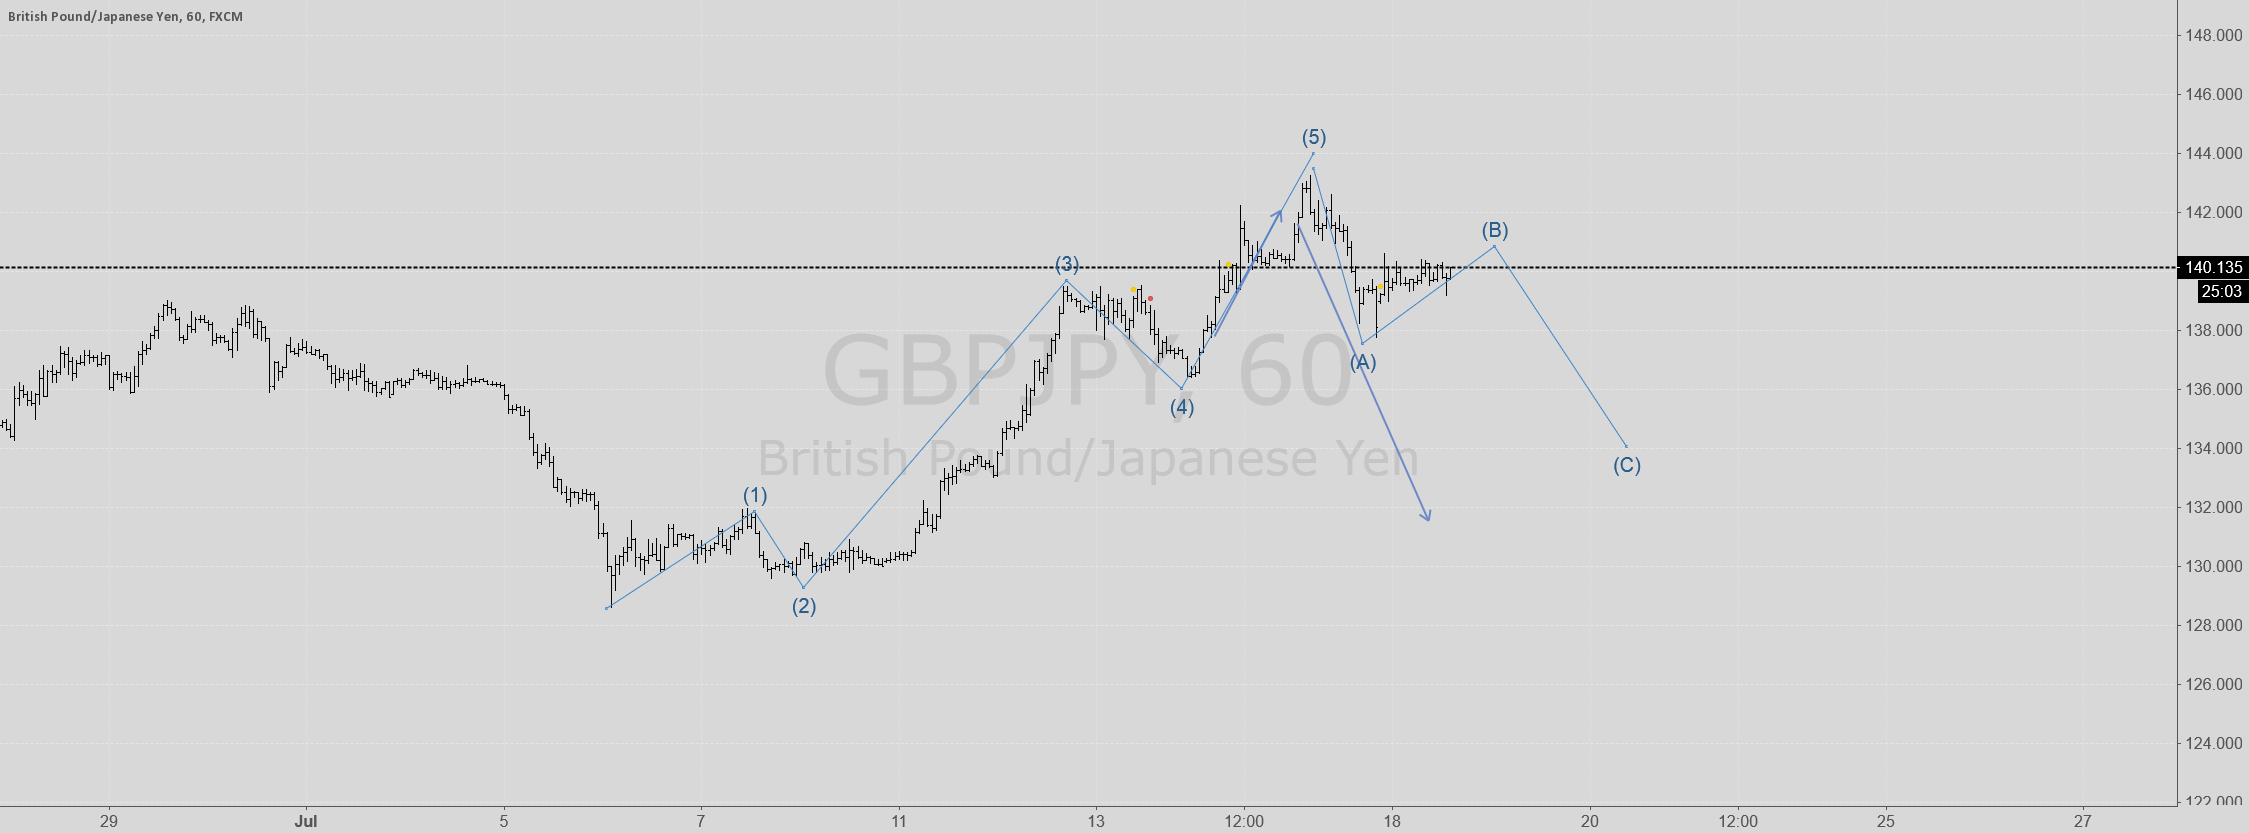 CHECK GBPJPY IN 1 HOUR